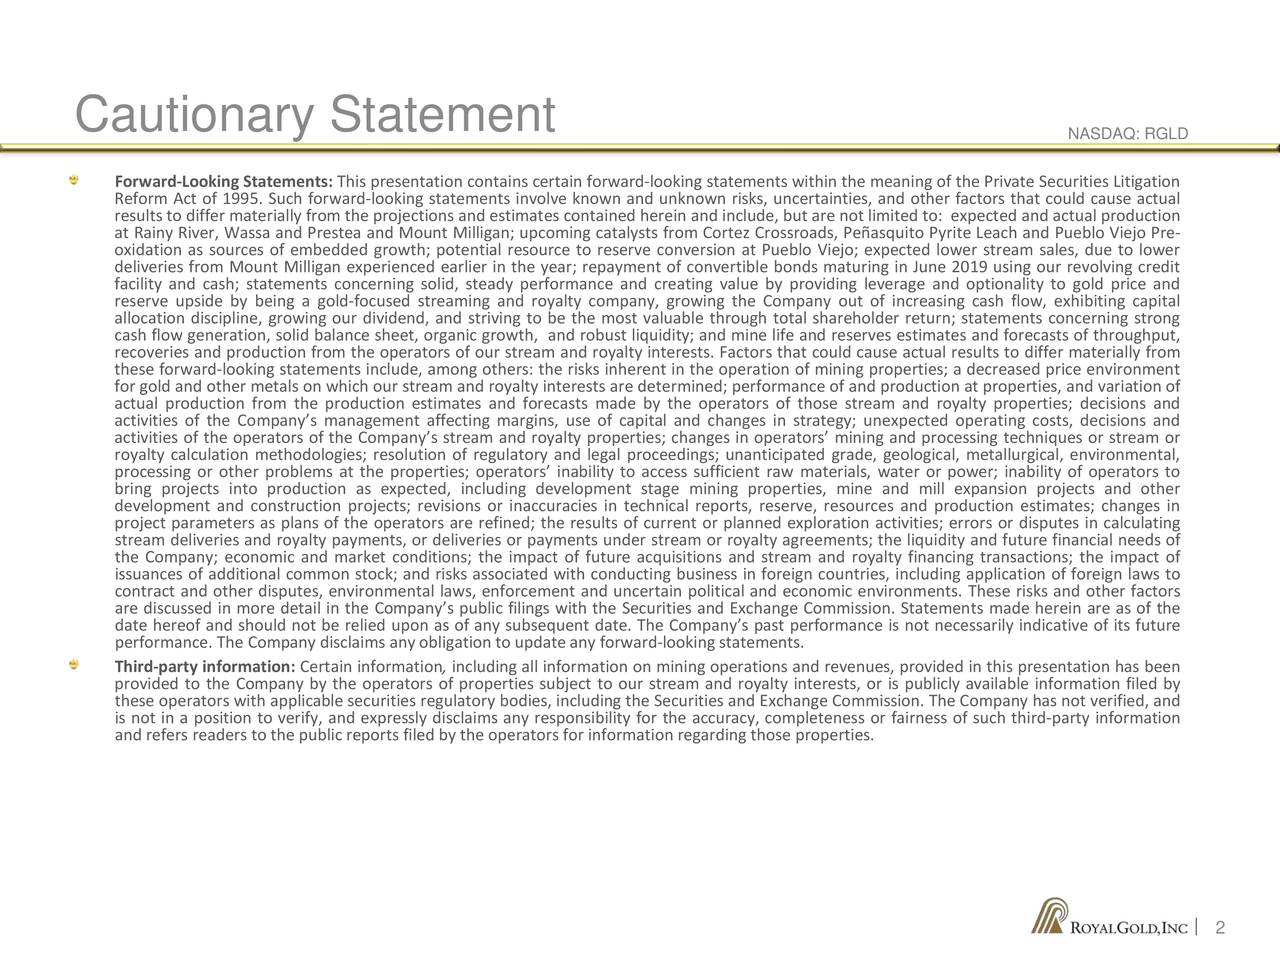 Forward-Looking Statements: This presentation contains certain forward-looking statements within the meaning of the Private Securities Litigation Reform Act of 1995. Such forward-looking statements involve known and unknown risks, uncertainties, and other factors that could cause actual results to differ materially from the projections and estimates contained herein and include, but are not limited to: expected and actual production at Rainy River, Wassa and Prestea and Mount Milligan; upcoming catalysts from Cortez Crossroads, Peñasquito Pyrite Leach and Pueblo Viejo Pre- oxidation as sources of embedded growth; potential resource to reserve conversion at Pueblo Viejo; expected lower stream sales, due to lower deliveries from Mount Milligan experienced earlier in the year; repayment of convertible bonds maturing in June 2019 using our revolving credit facility and cash; statements concerning solid, steady performance and creating value by providing leverage and optionality to gold price and reserve upside by being a gold-focused streaming and royalty company, growing the Company out of increasing cash flow, exhibiting capital allocation discipline, growing our dividend, and striving to be the most valuable through total shareholder return; statements concerning strong cash flow generation, solid balance sheet, organic growth, and robust liquidity; and mine life and reserves estimates and forecasts of throughput, recoveries and production from the operators of our stream and royalty interests. Factors that could cause actual results to differ materially from these forward-looking statements include, among others: the risks inherent in the operation of mining properties; a decreased price environment for gold and other metals on which our stream and royalty interests are determined; performance of and production at properties, and variation of actual production from the production estimates and forecasts made by the operators of those stream and royalty properties; d